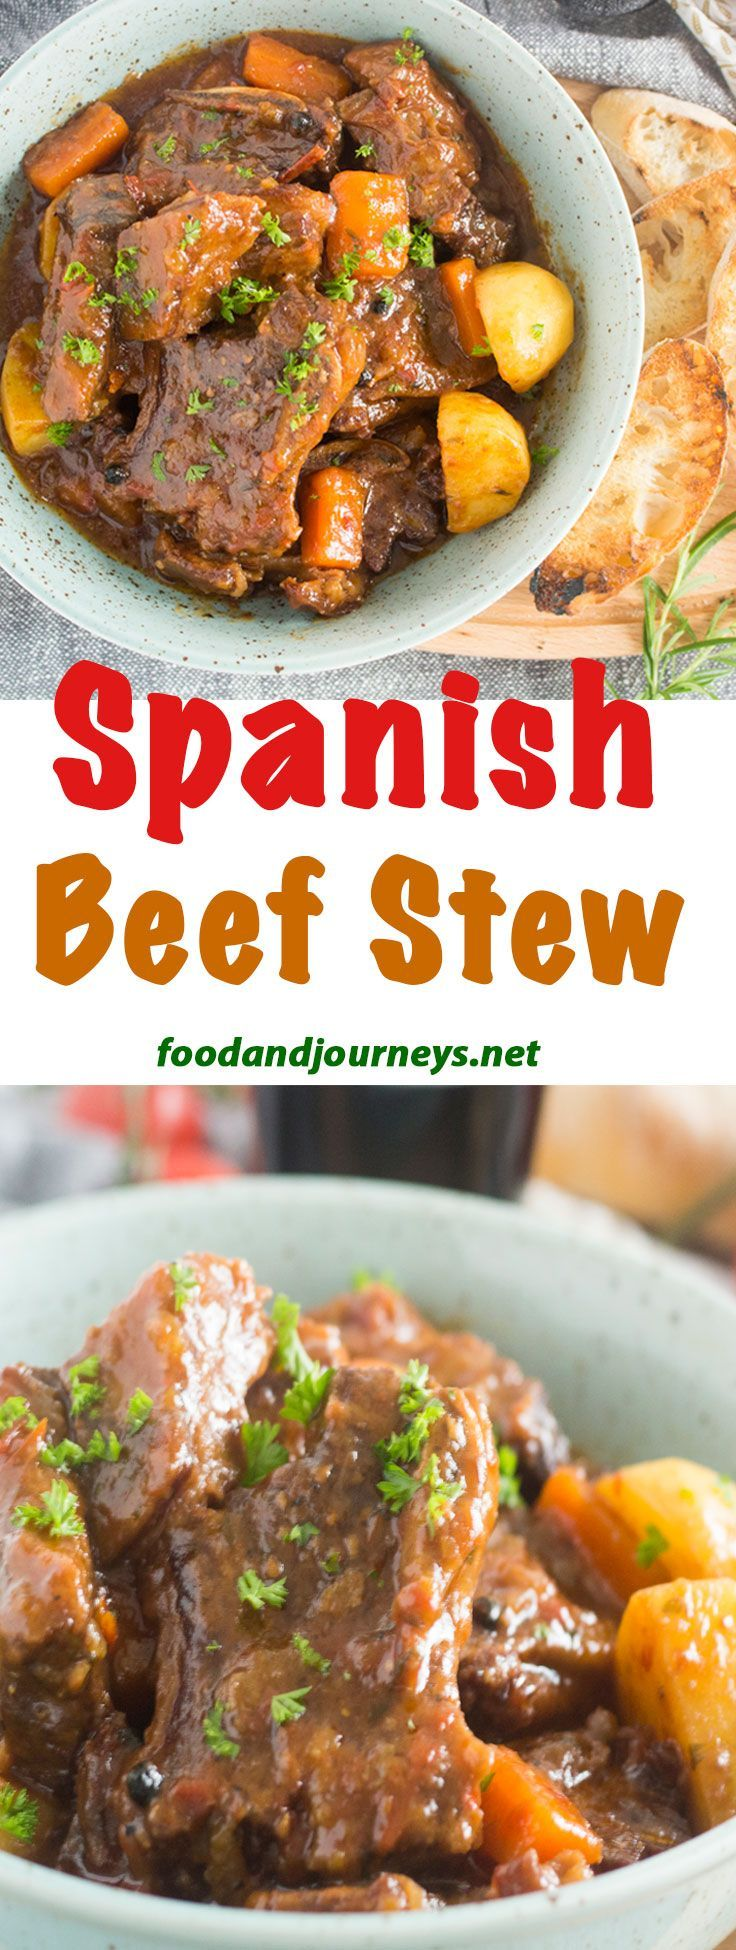 Spanish Recipe | Stew Recipe | Beef Recipe | Braised Beef. This Spanish Beef Stew is the absolute comfort food! Richly-flavored sauce and fall-off-the-bone short ribs!  Enjoy it with some crusty bread and a glass of red wine! #spanishrecipes #ShortRibsStew #beefrecipes #stewrecipes